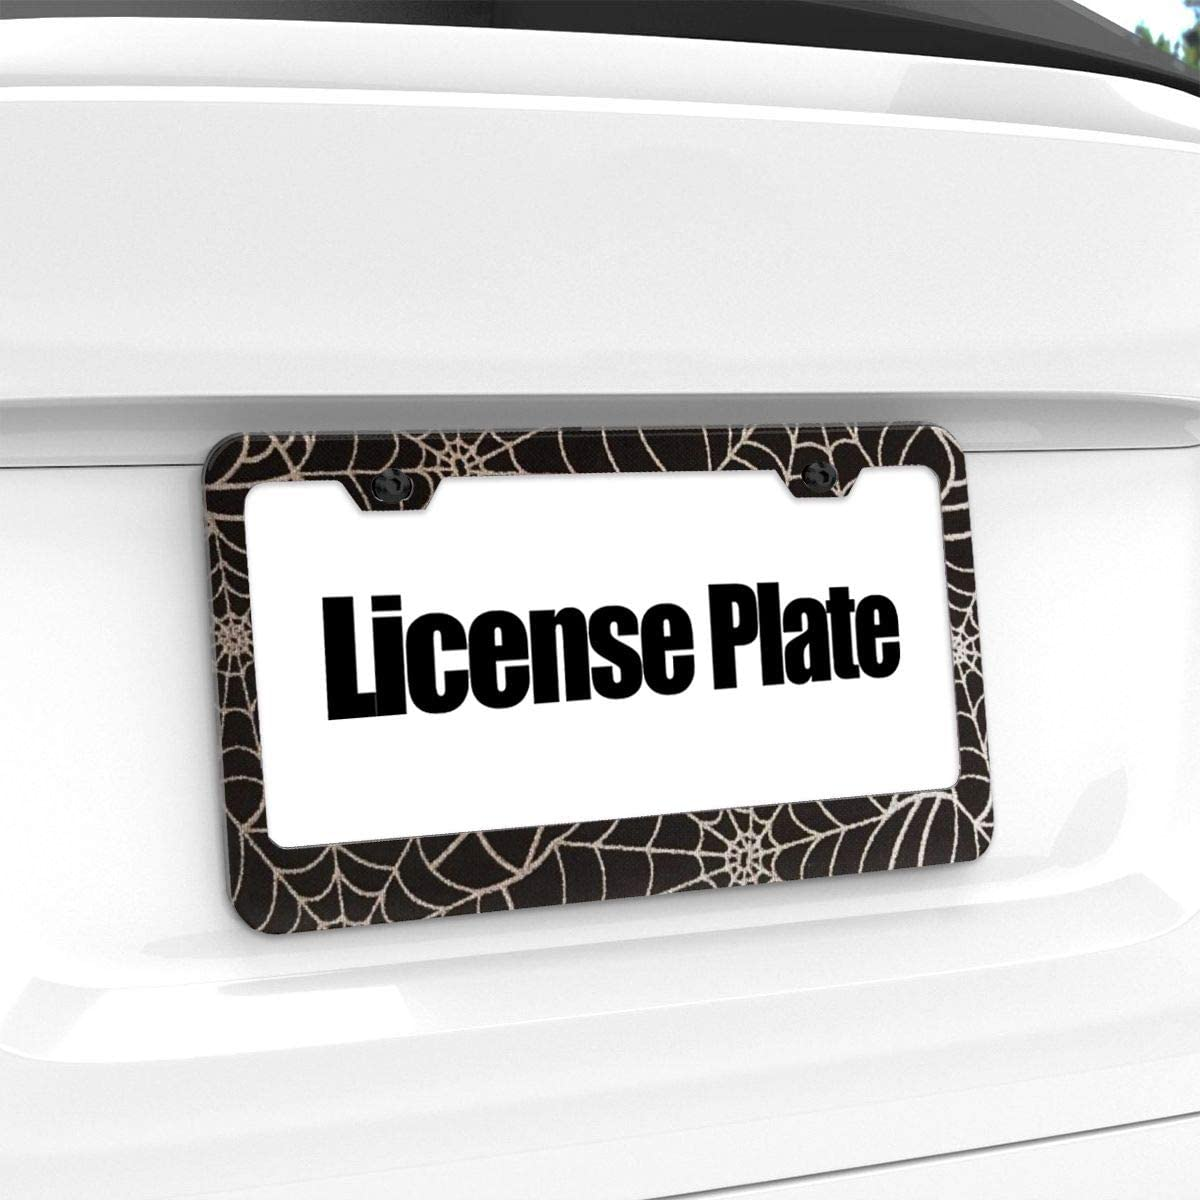 Dark Blue Camo License Plate Frames Stainless Steel Car Licence Plate Covers Slim Design for US Standard